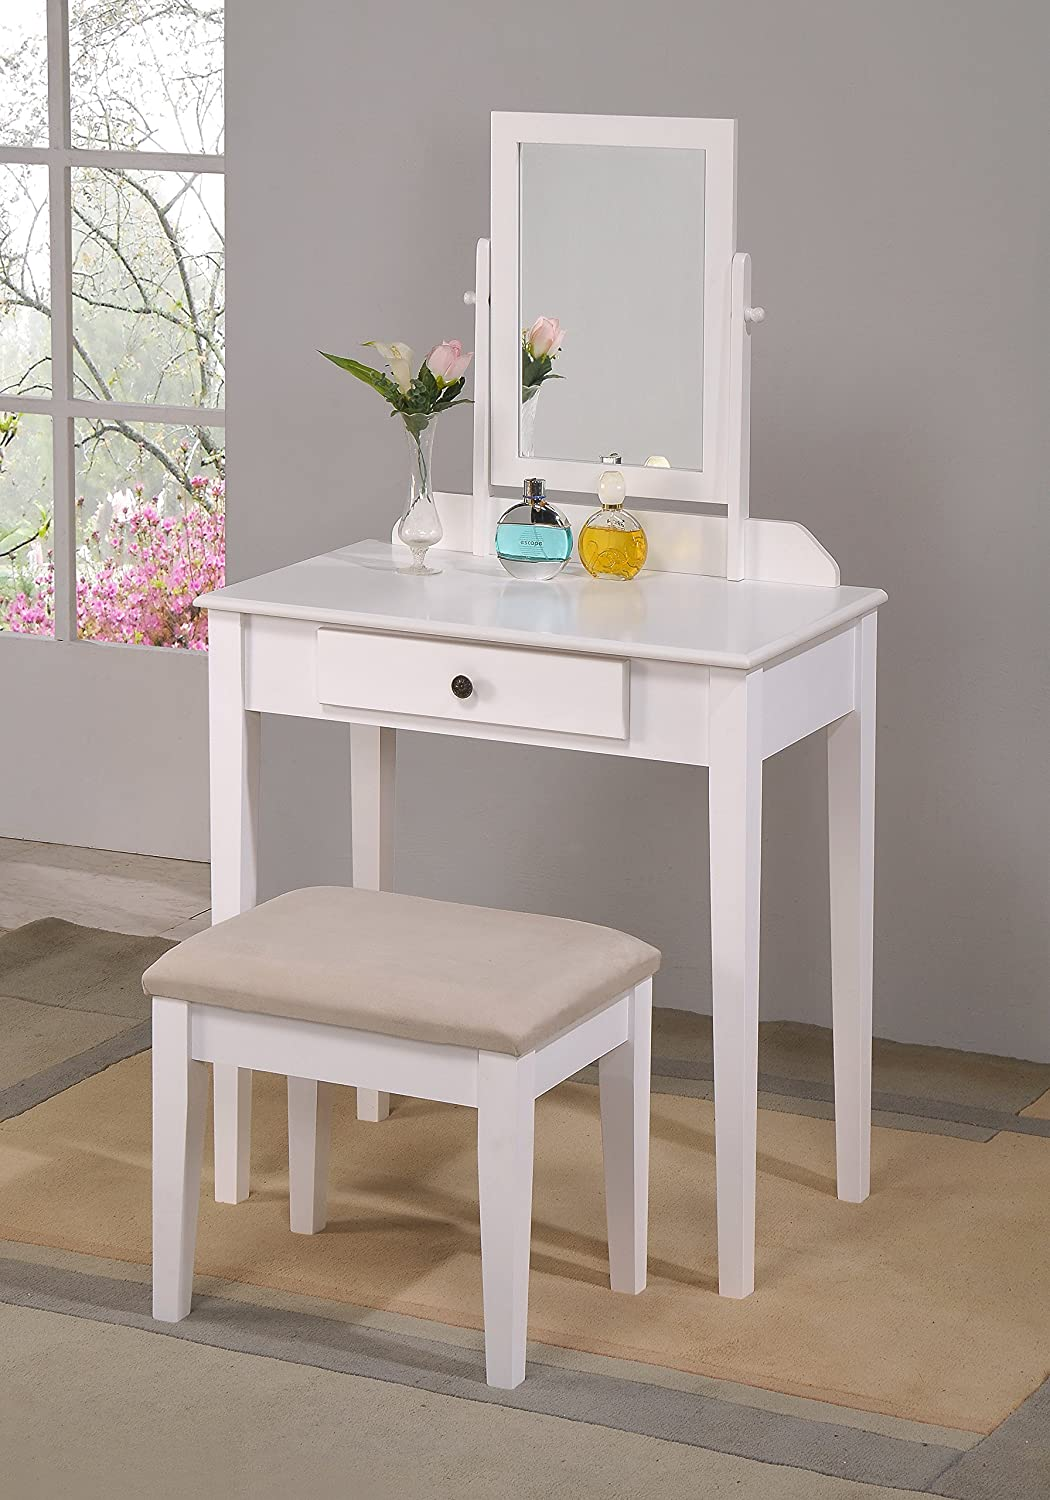 Amazon com  Crown Mark Iris Vanity Table Stool  White Finish with Beige  Seat  Kitchen   Dining. Amazon com  Crown Mark Iris Vanity Table Stool  White Finish with